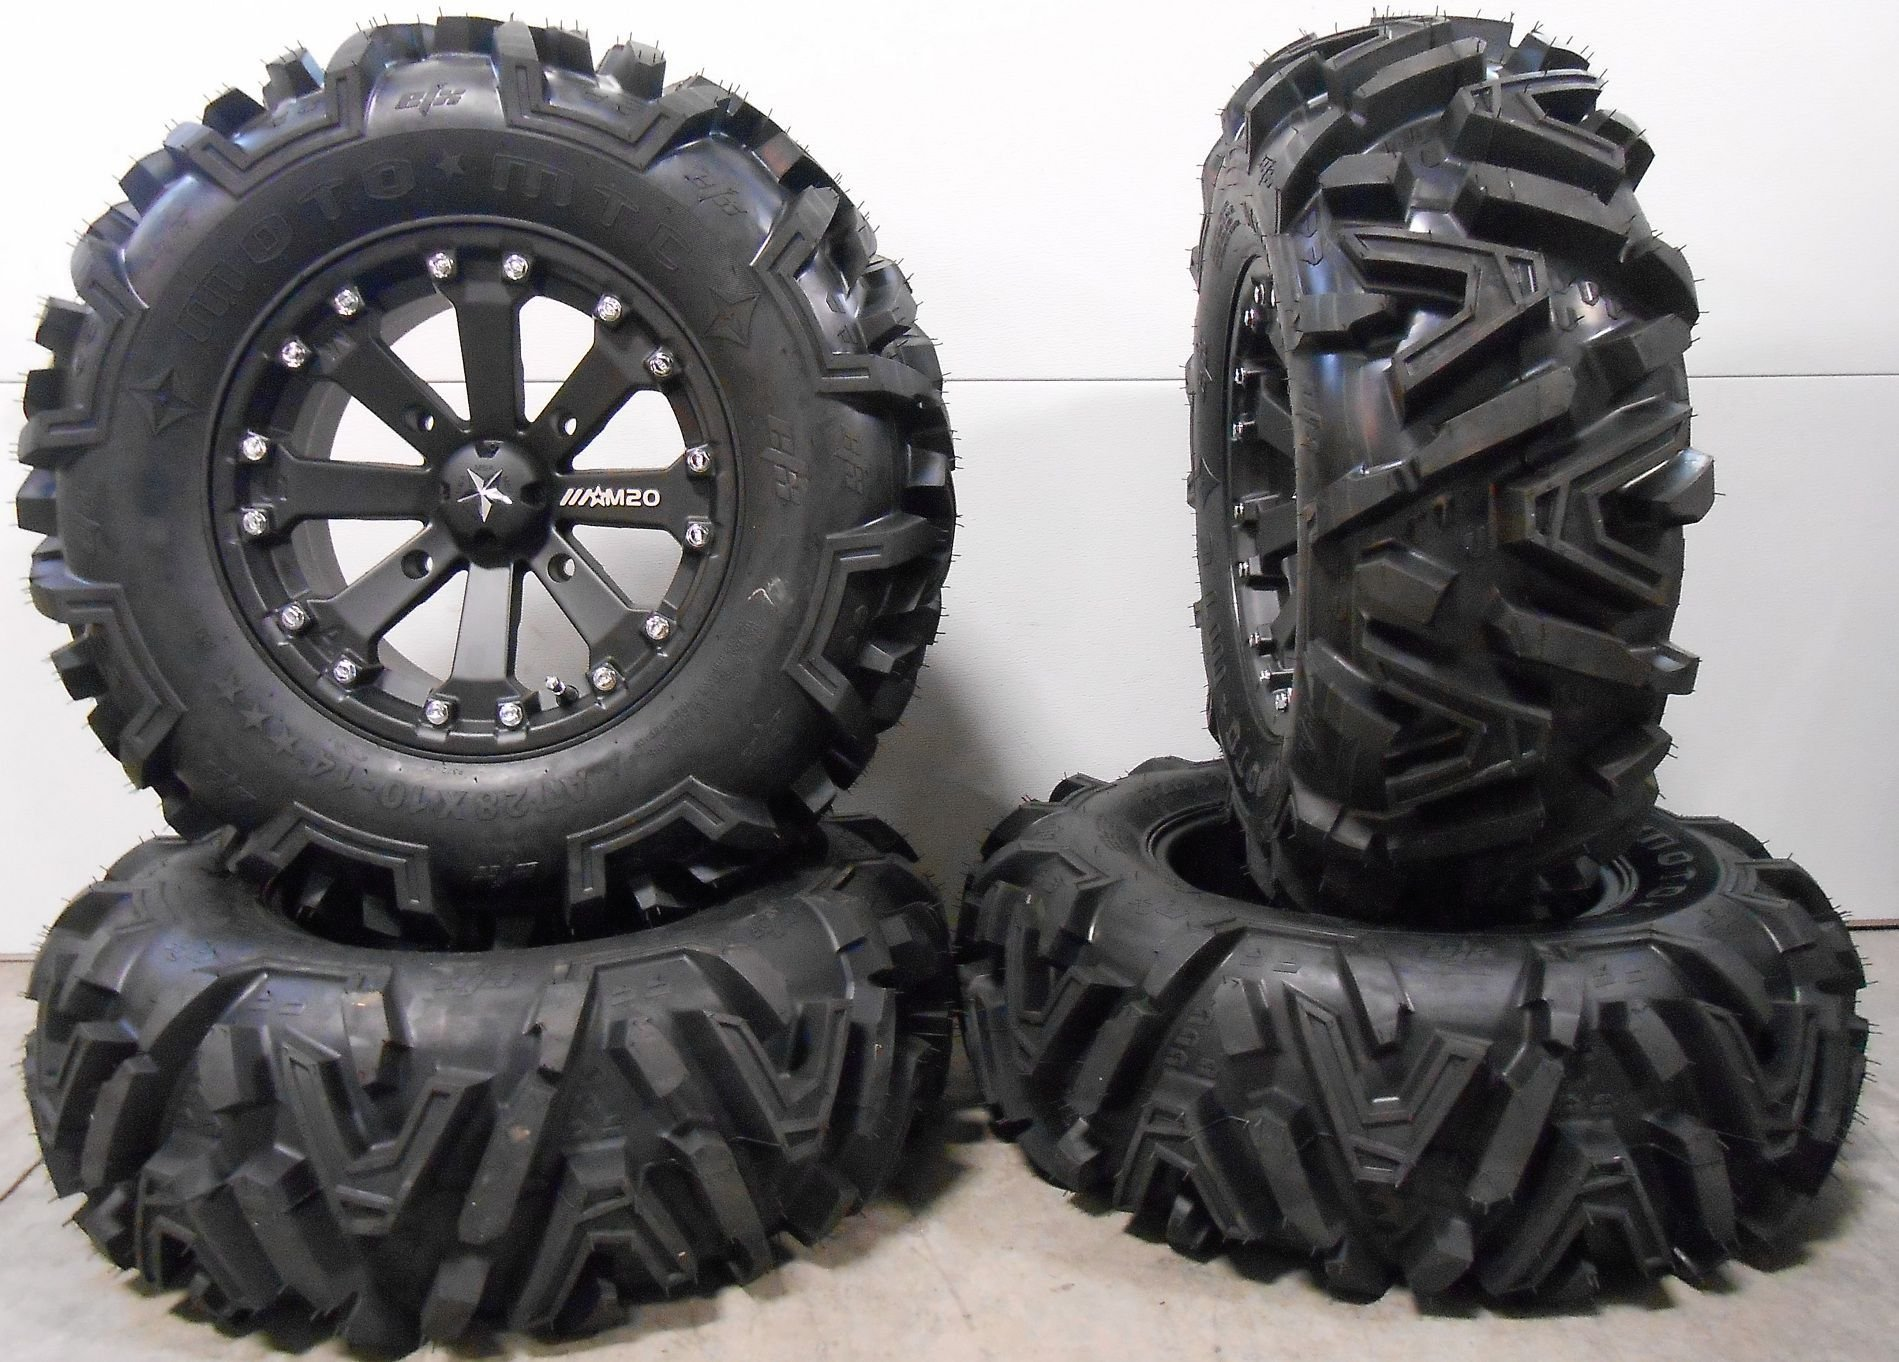 Bundle - 9 Items: MSA Black Kore 14'' ATV Wheels 28'' EFX Moto MTC Tires [4x156 Bolt Pattern 12mmx1.5 Lug Kit]